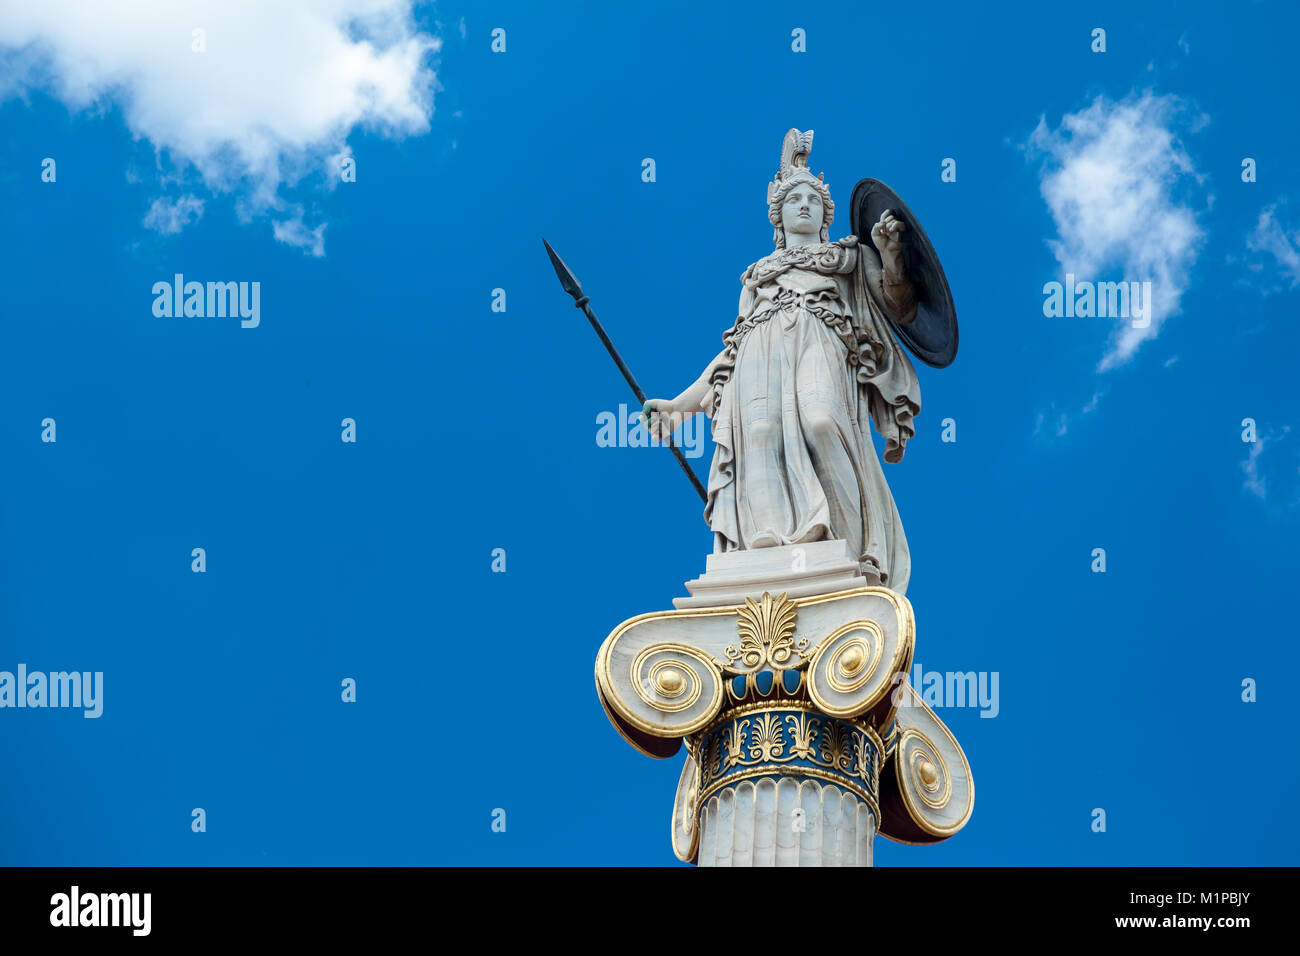 The goddess Athina, the goddess of wisdom and protector of the city of Athens, Greece. - Stock Image